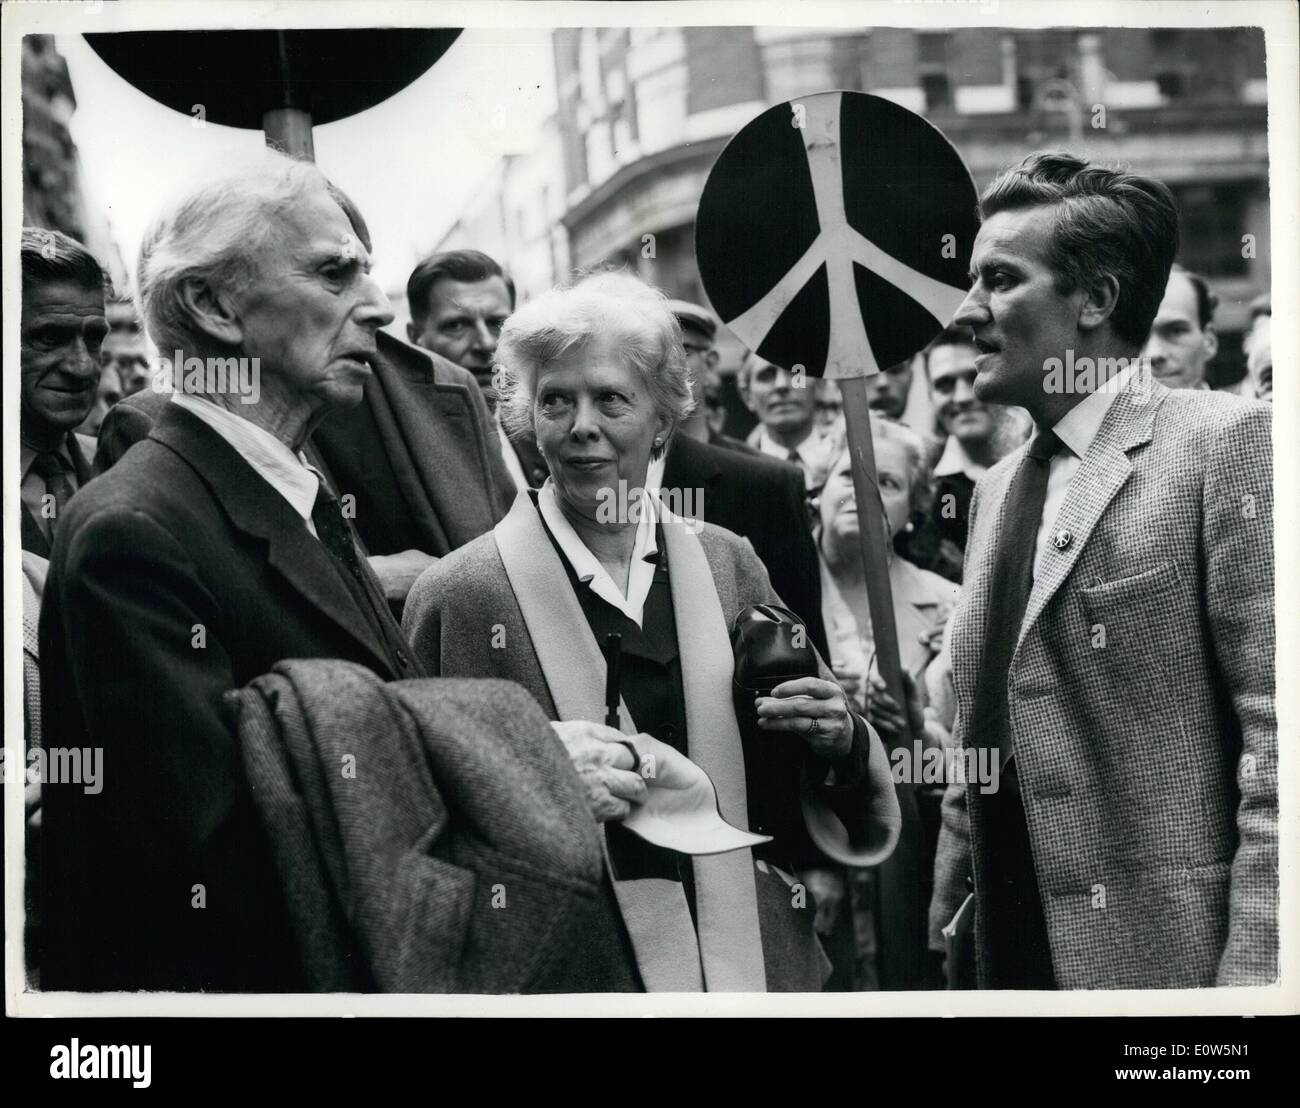 Sep. 09, 1961 - LORD RUSSELL SENT TO JAII...FOR INCITING PUBLIC TO TAKE PART IN SIT DOWN DEMONSTRATION AGAINST' NUCLEAR WEAPONS. Earl Russell the 89 year old philosopher was today jailed for seven days at Bow Street for inciting the public to take Pert in sit down demonstration in Parliament Square next Sunday in protest against nuclear weapons,. The magistrate MR - Stock Image